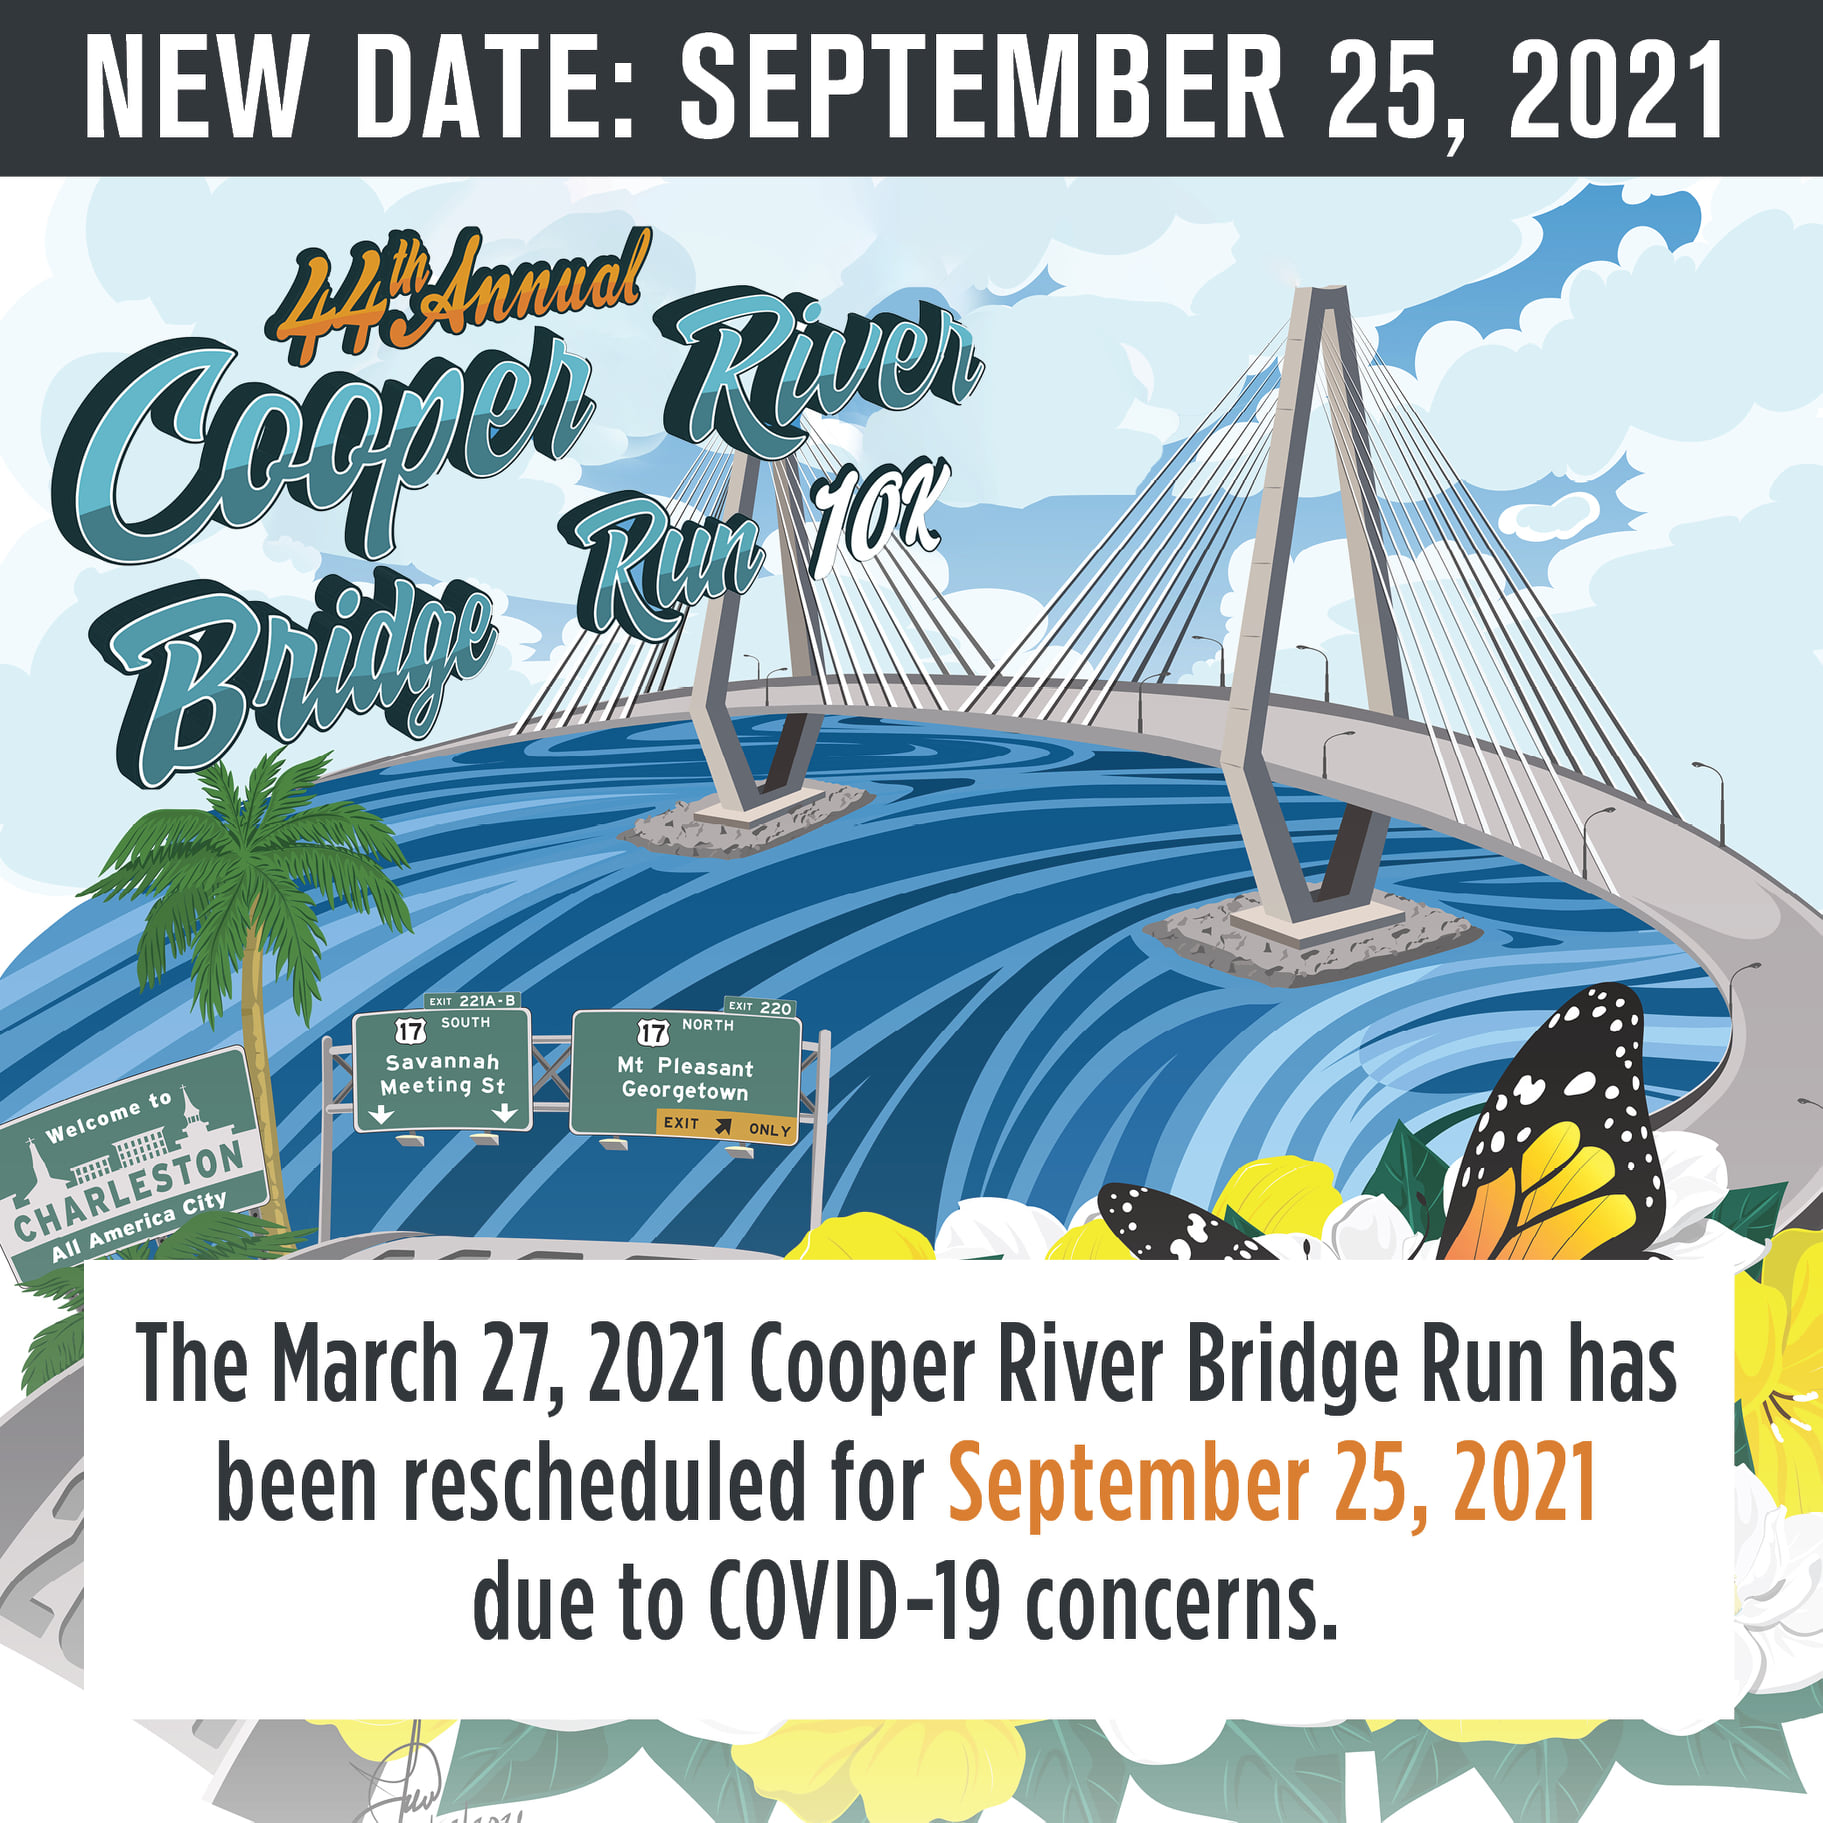 Cooper River Bridge Run 2021